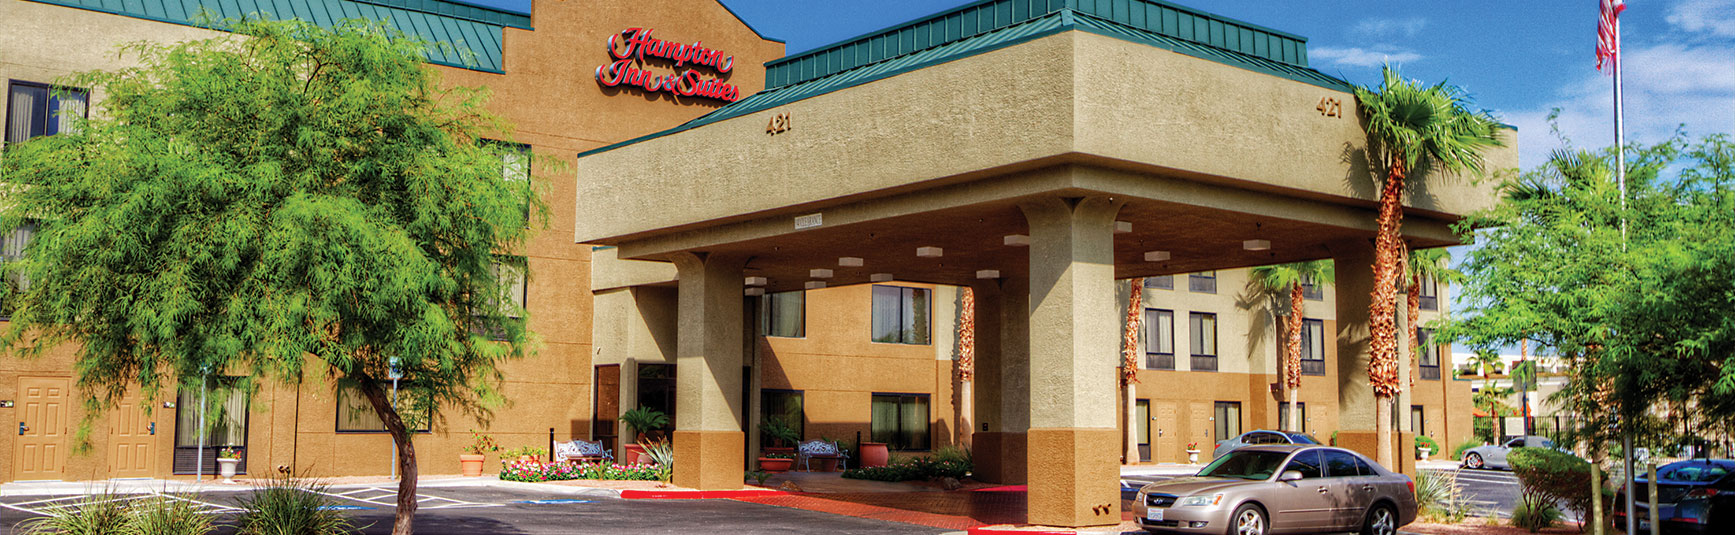 Hampton Inn & Suites – Henderson